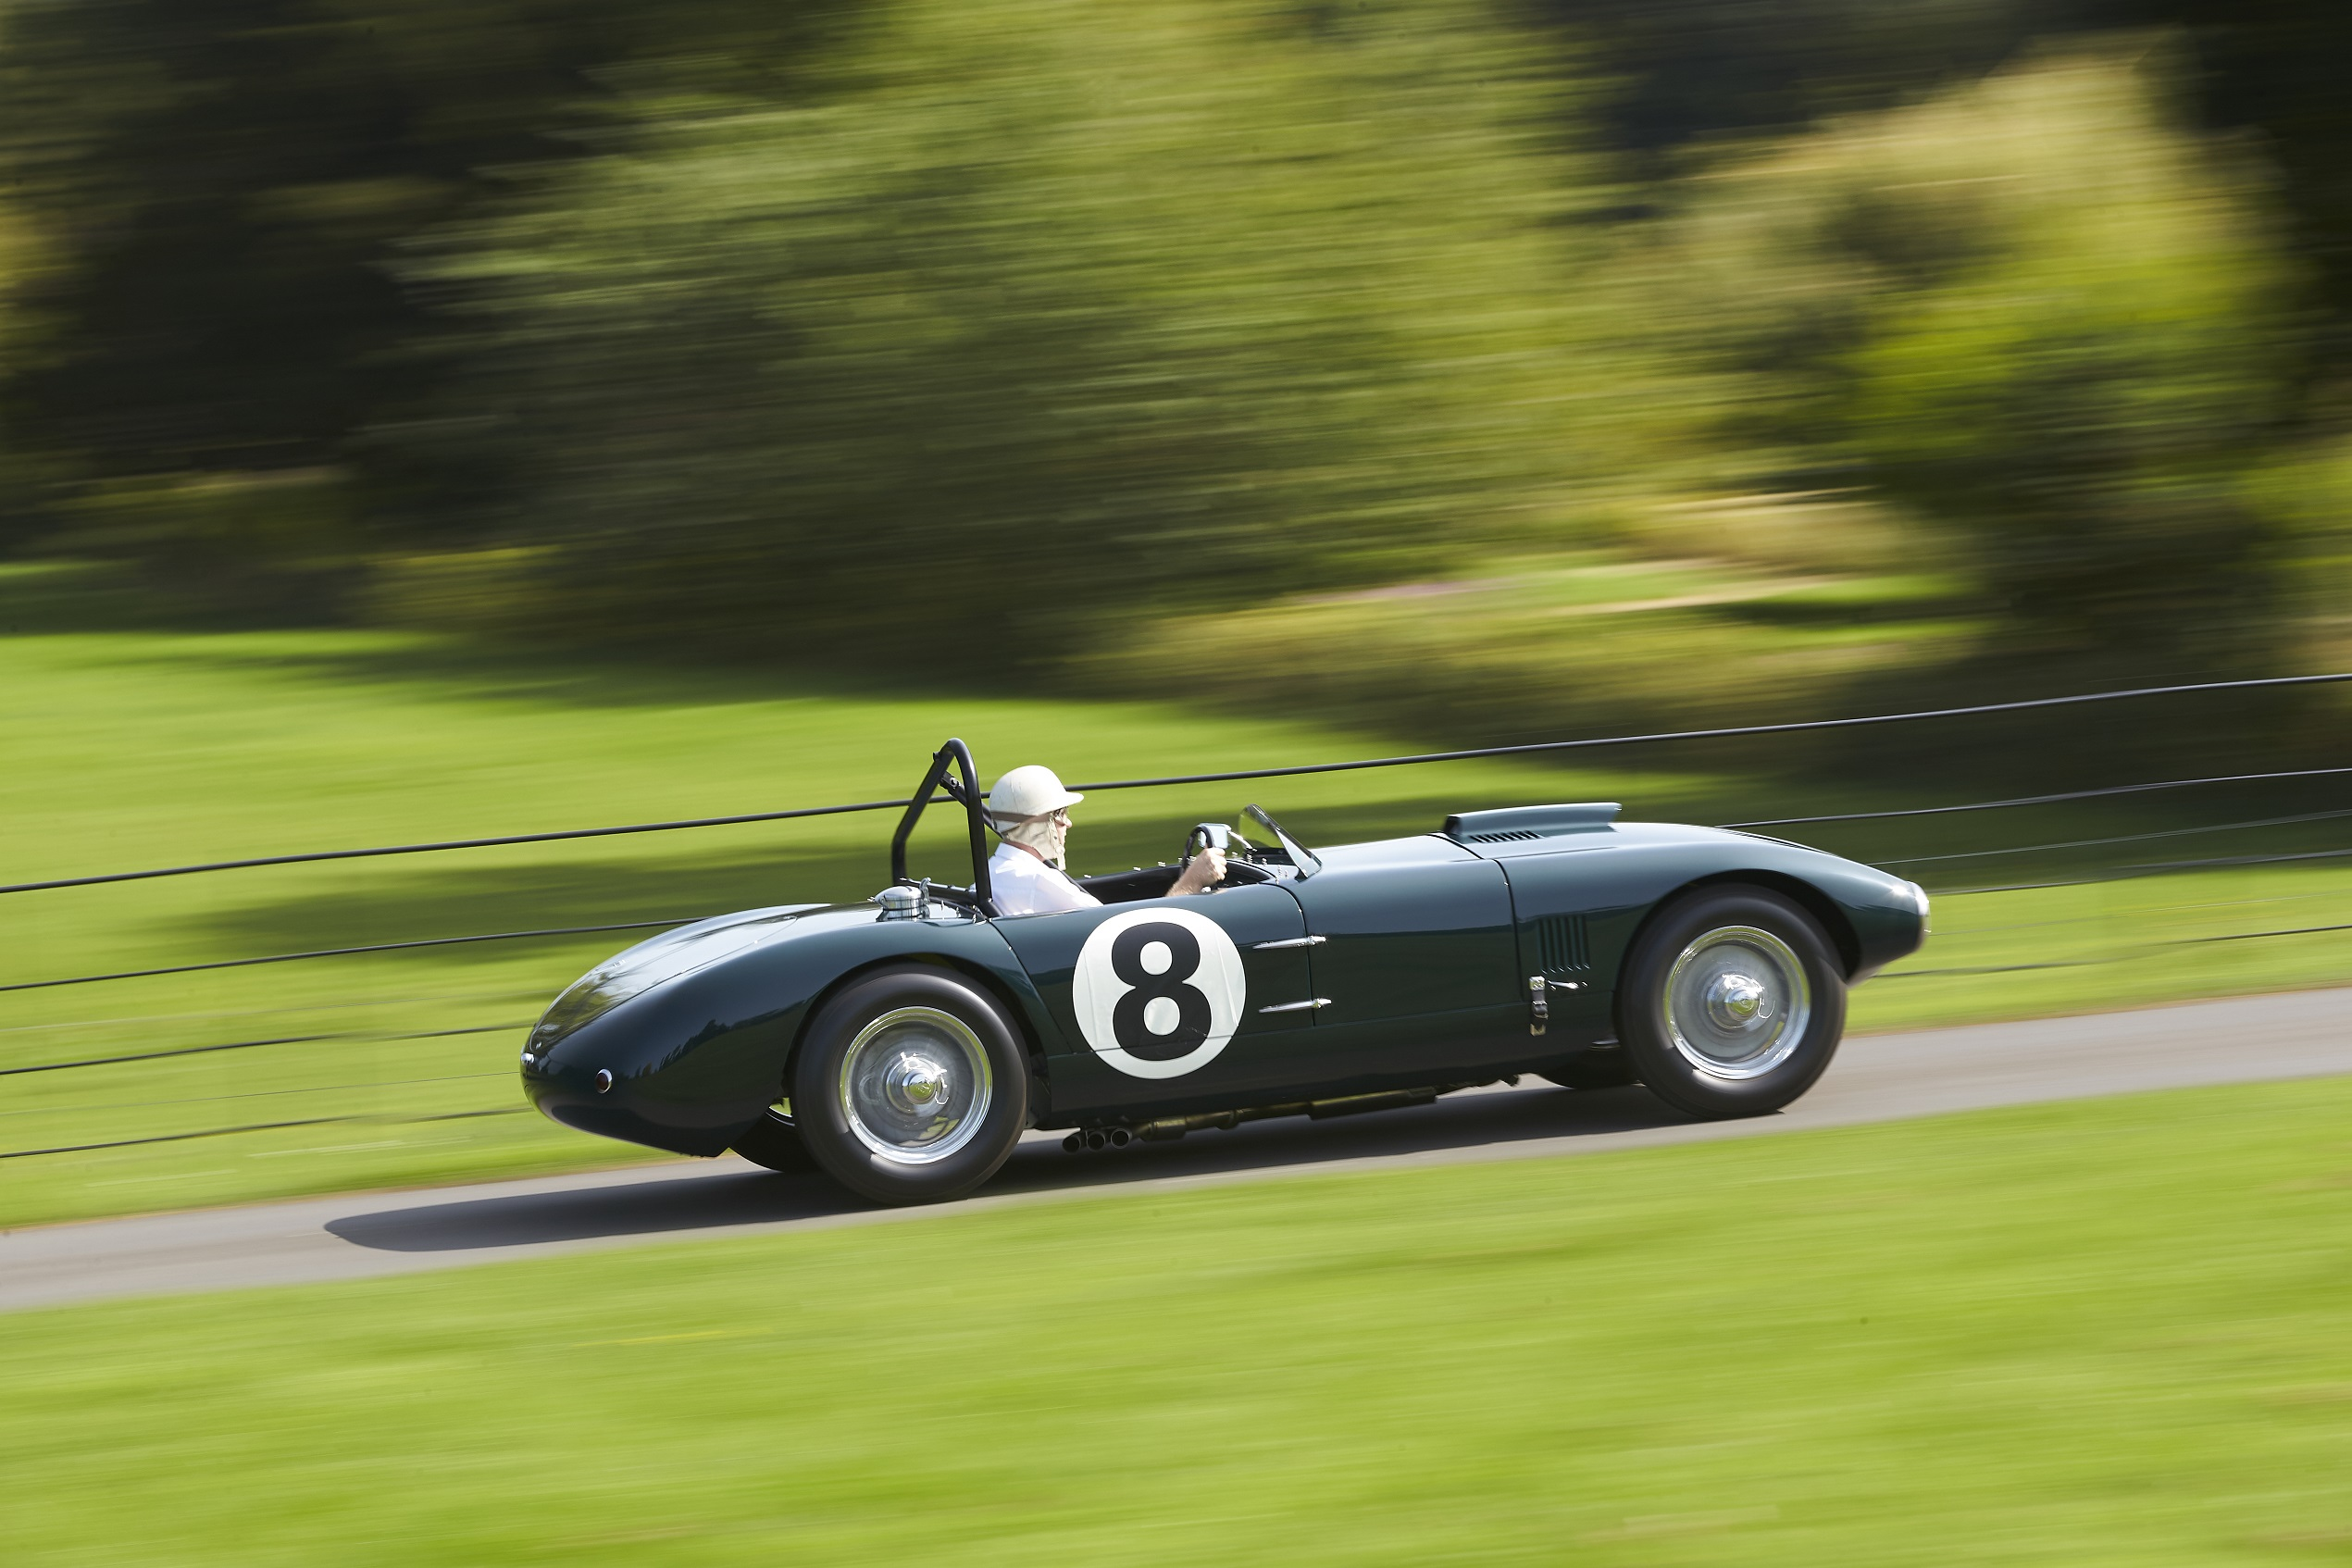 Allard returns after 62 years with Le Mans continuation sports car